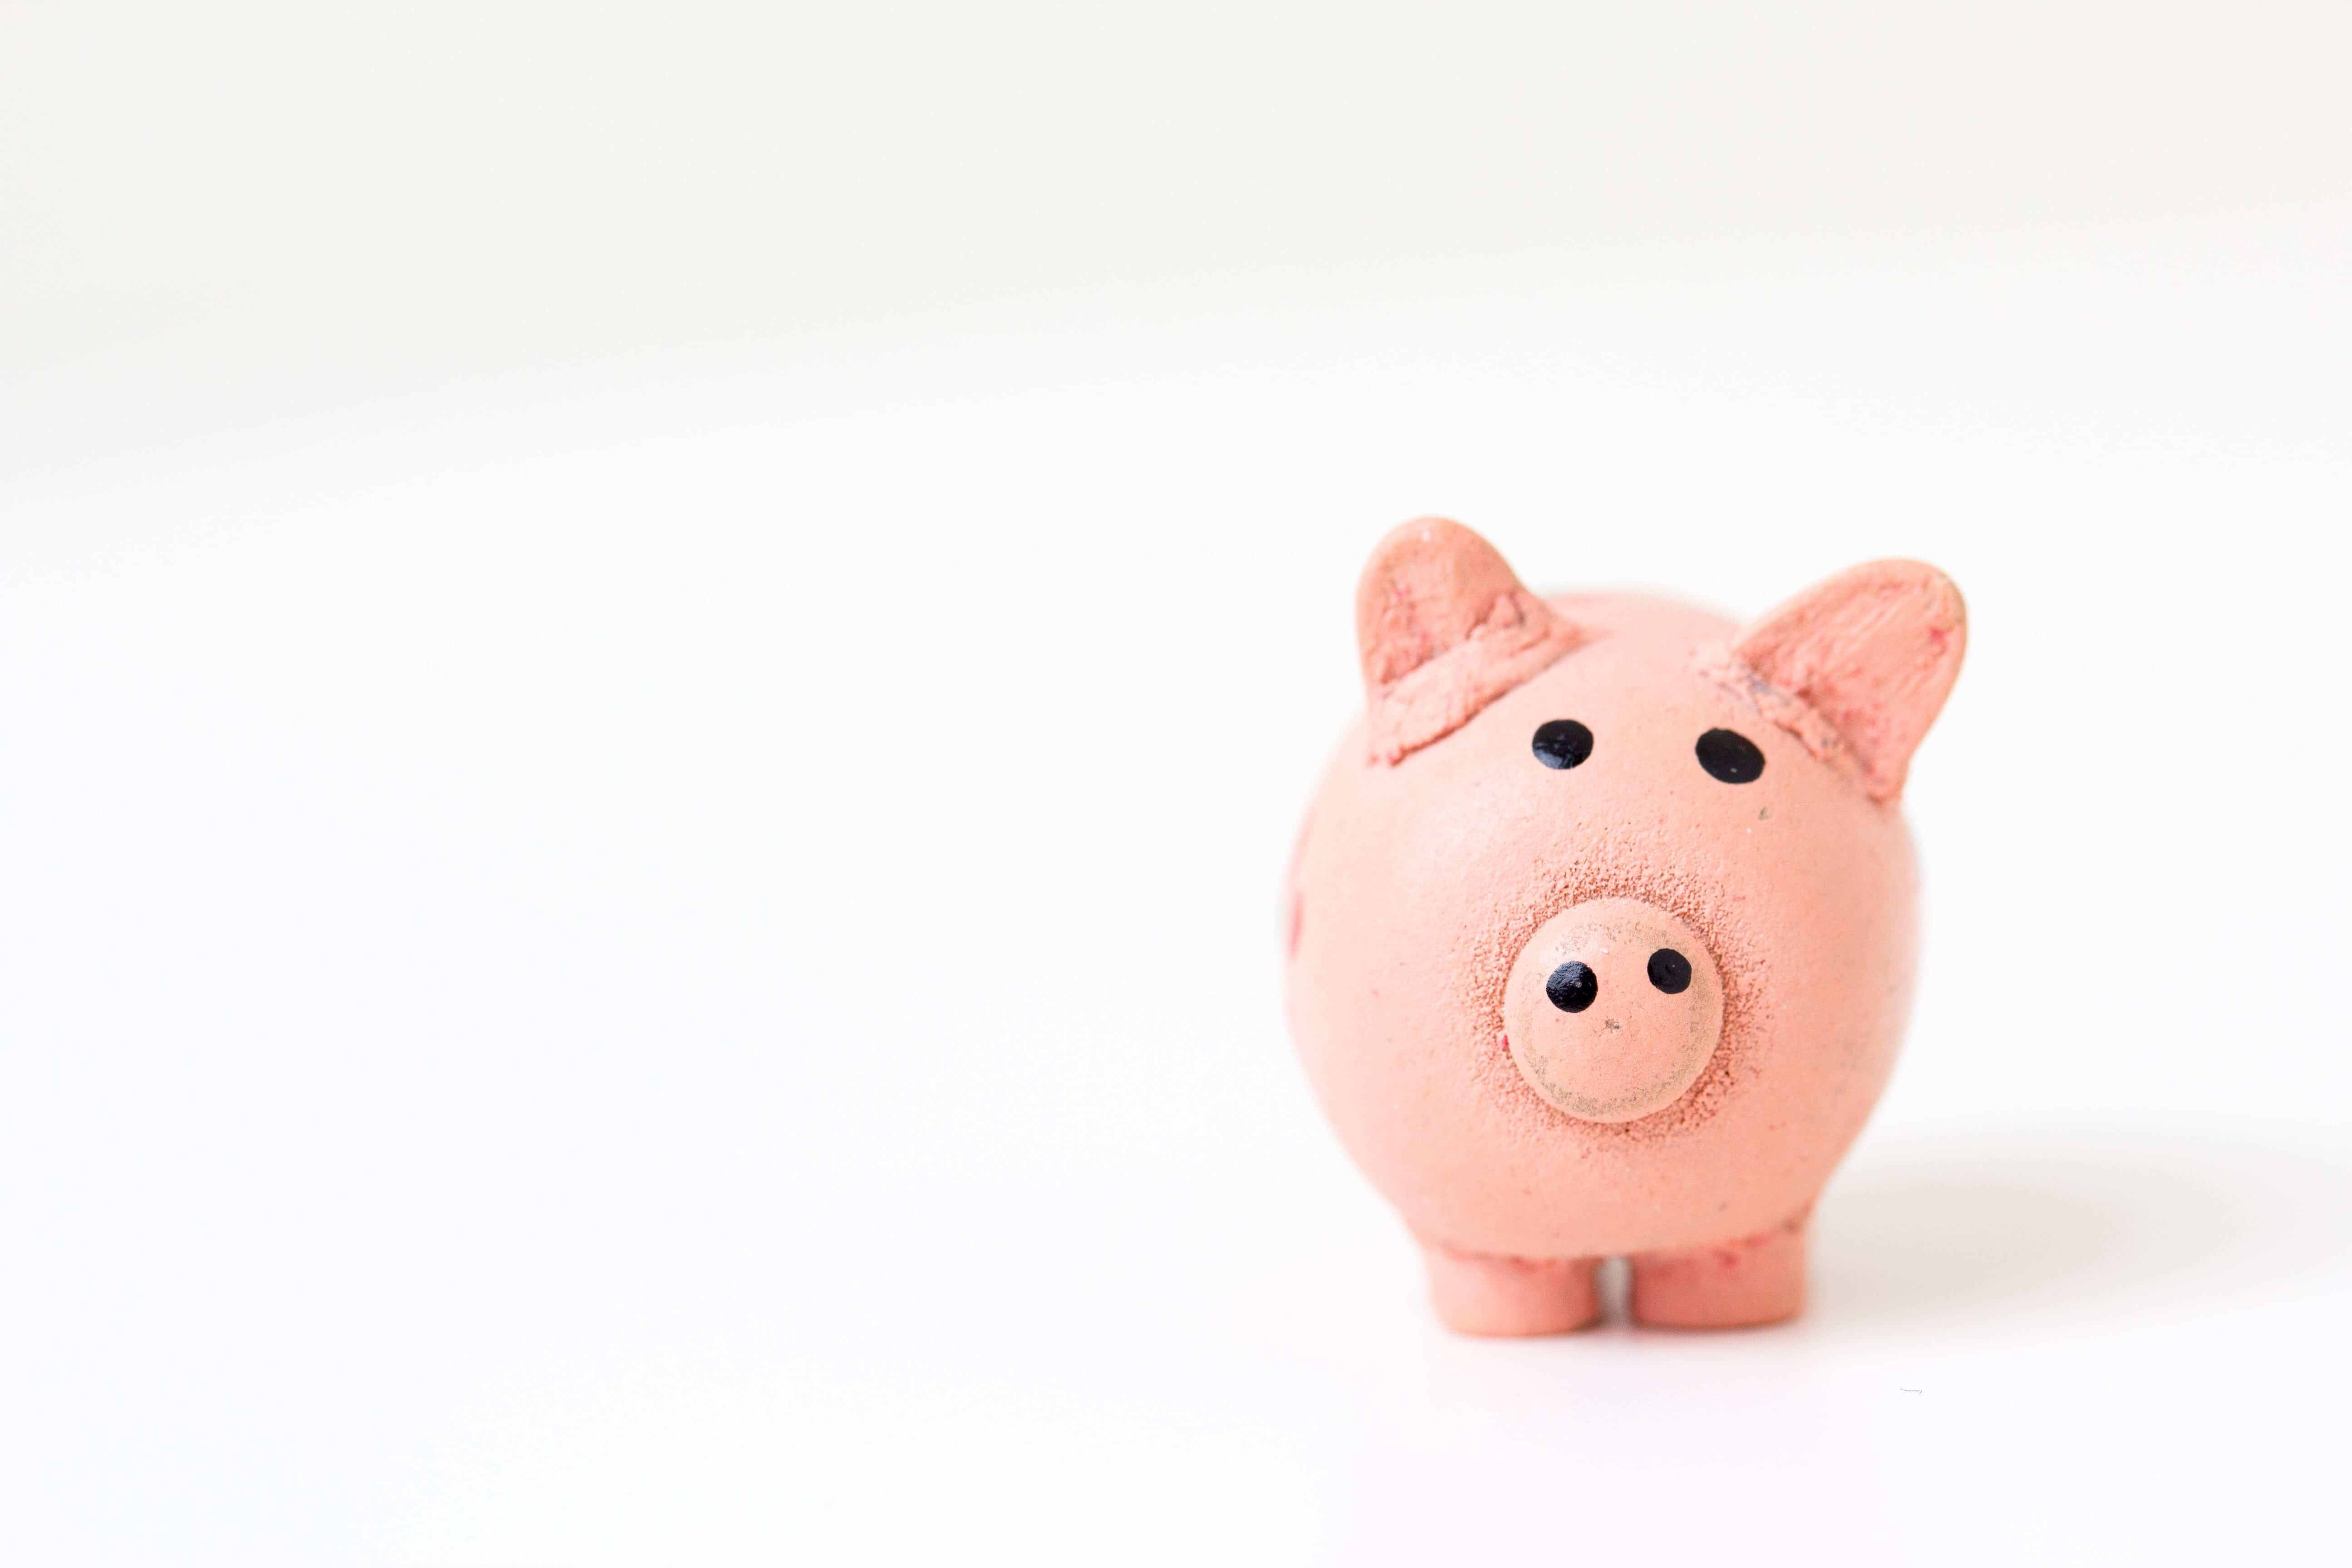 A pink ceramic pig on white background